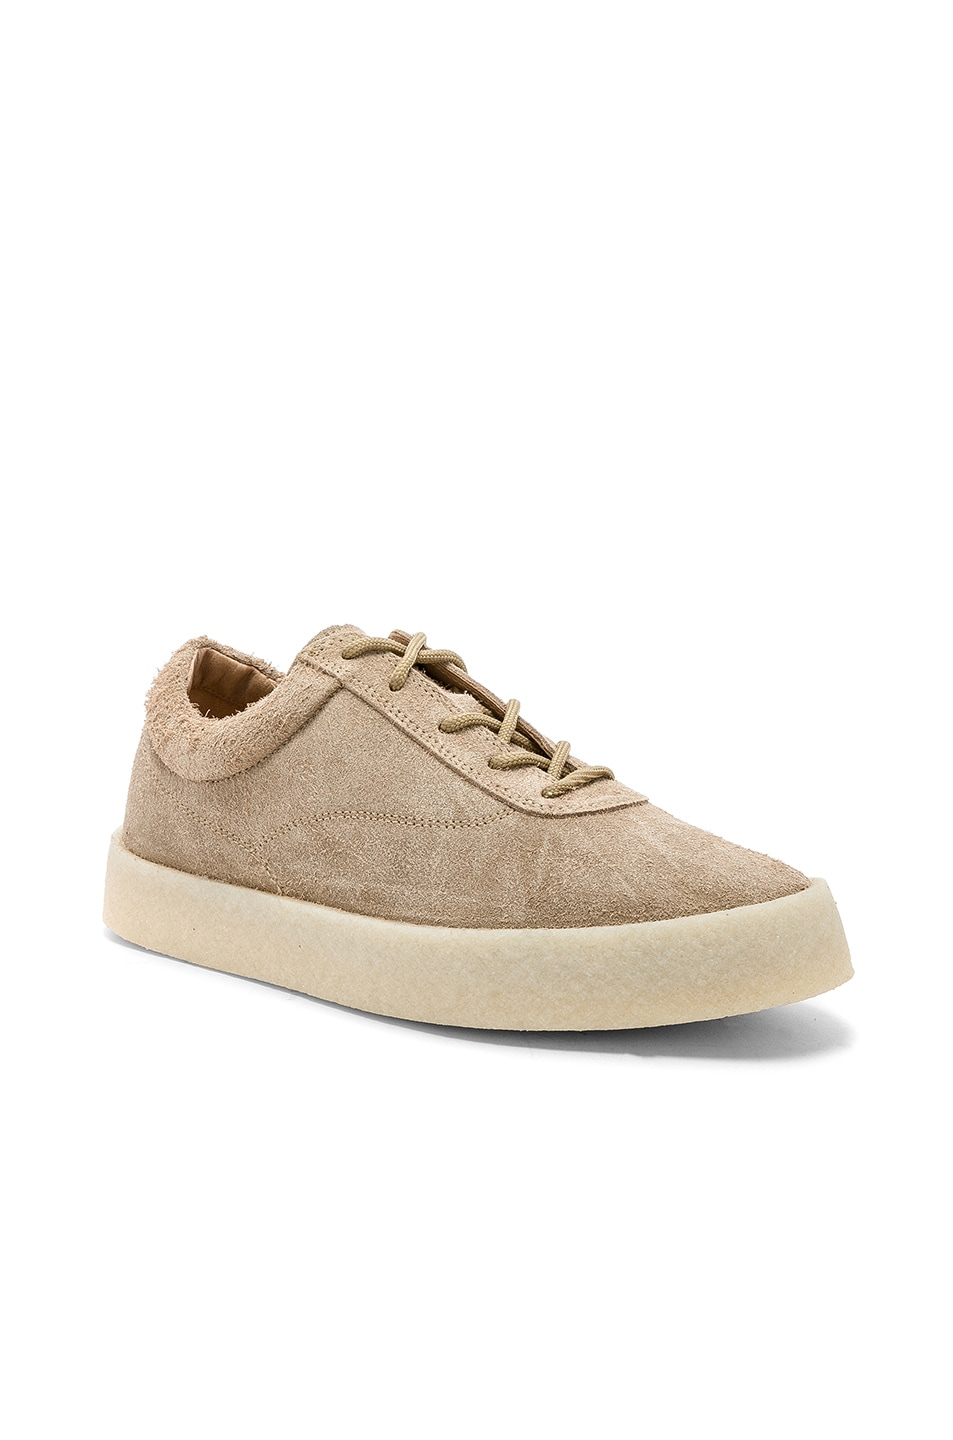 0547f923c4603 Image 1 of YEEZY Season 6 Crepe Sneaker in Taupe